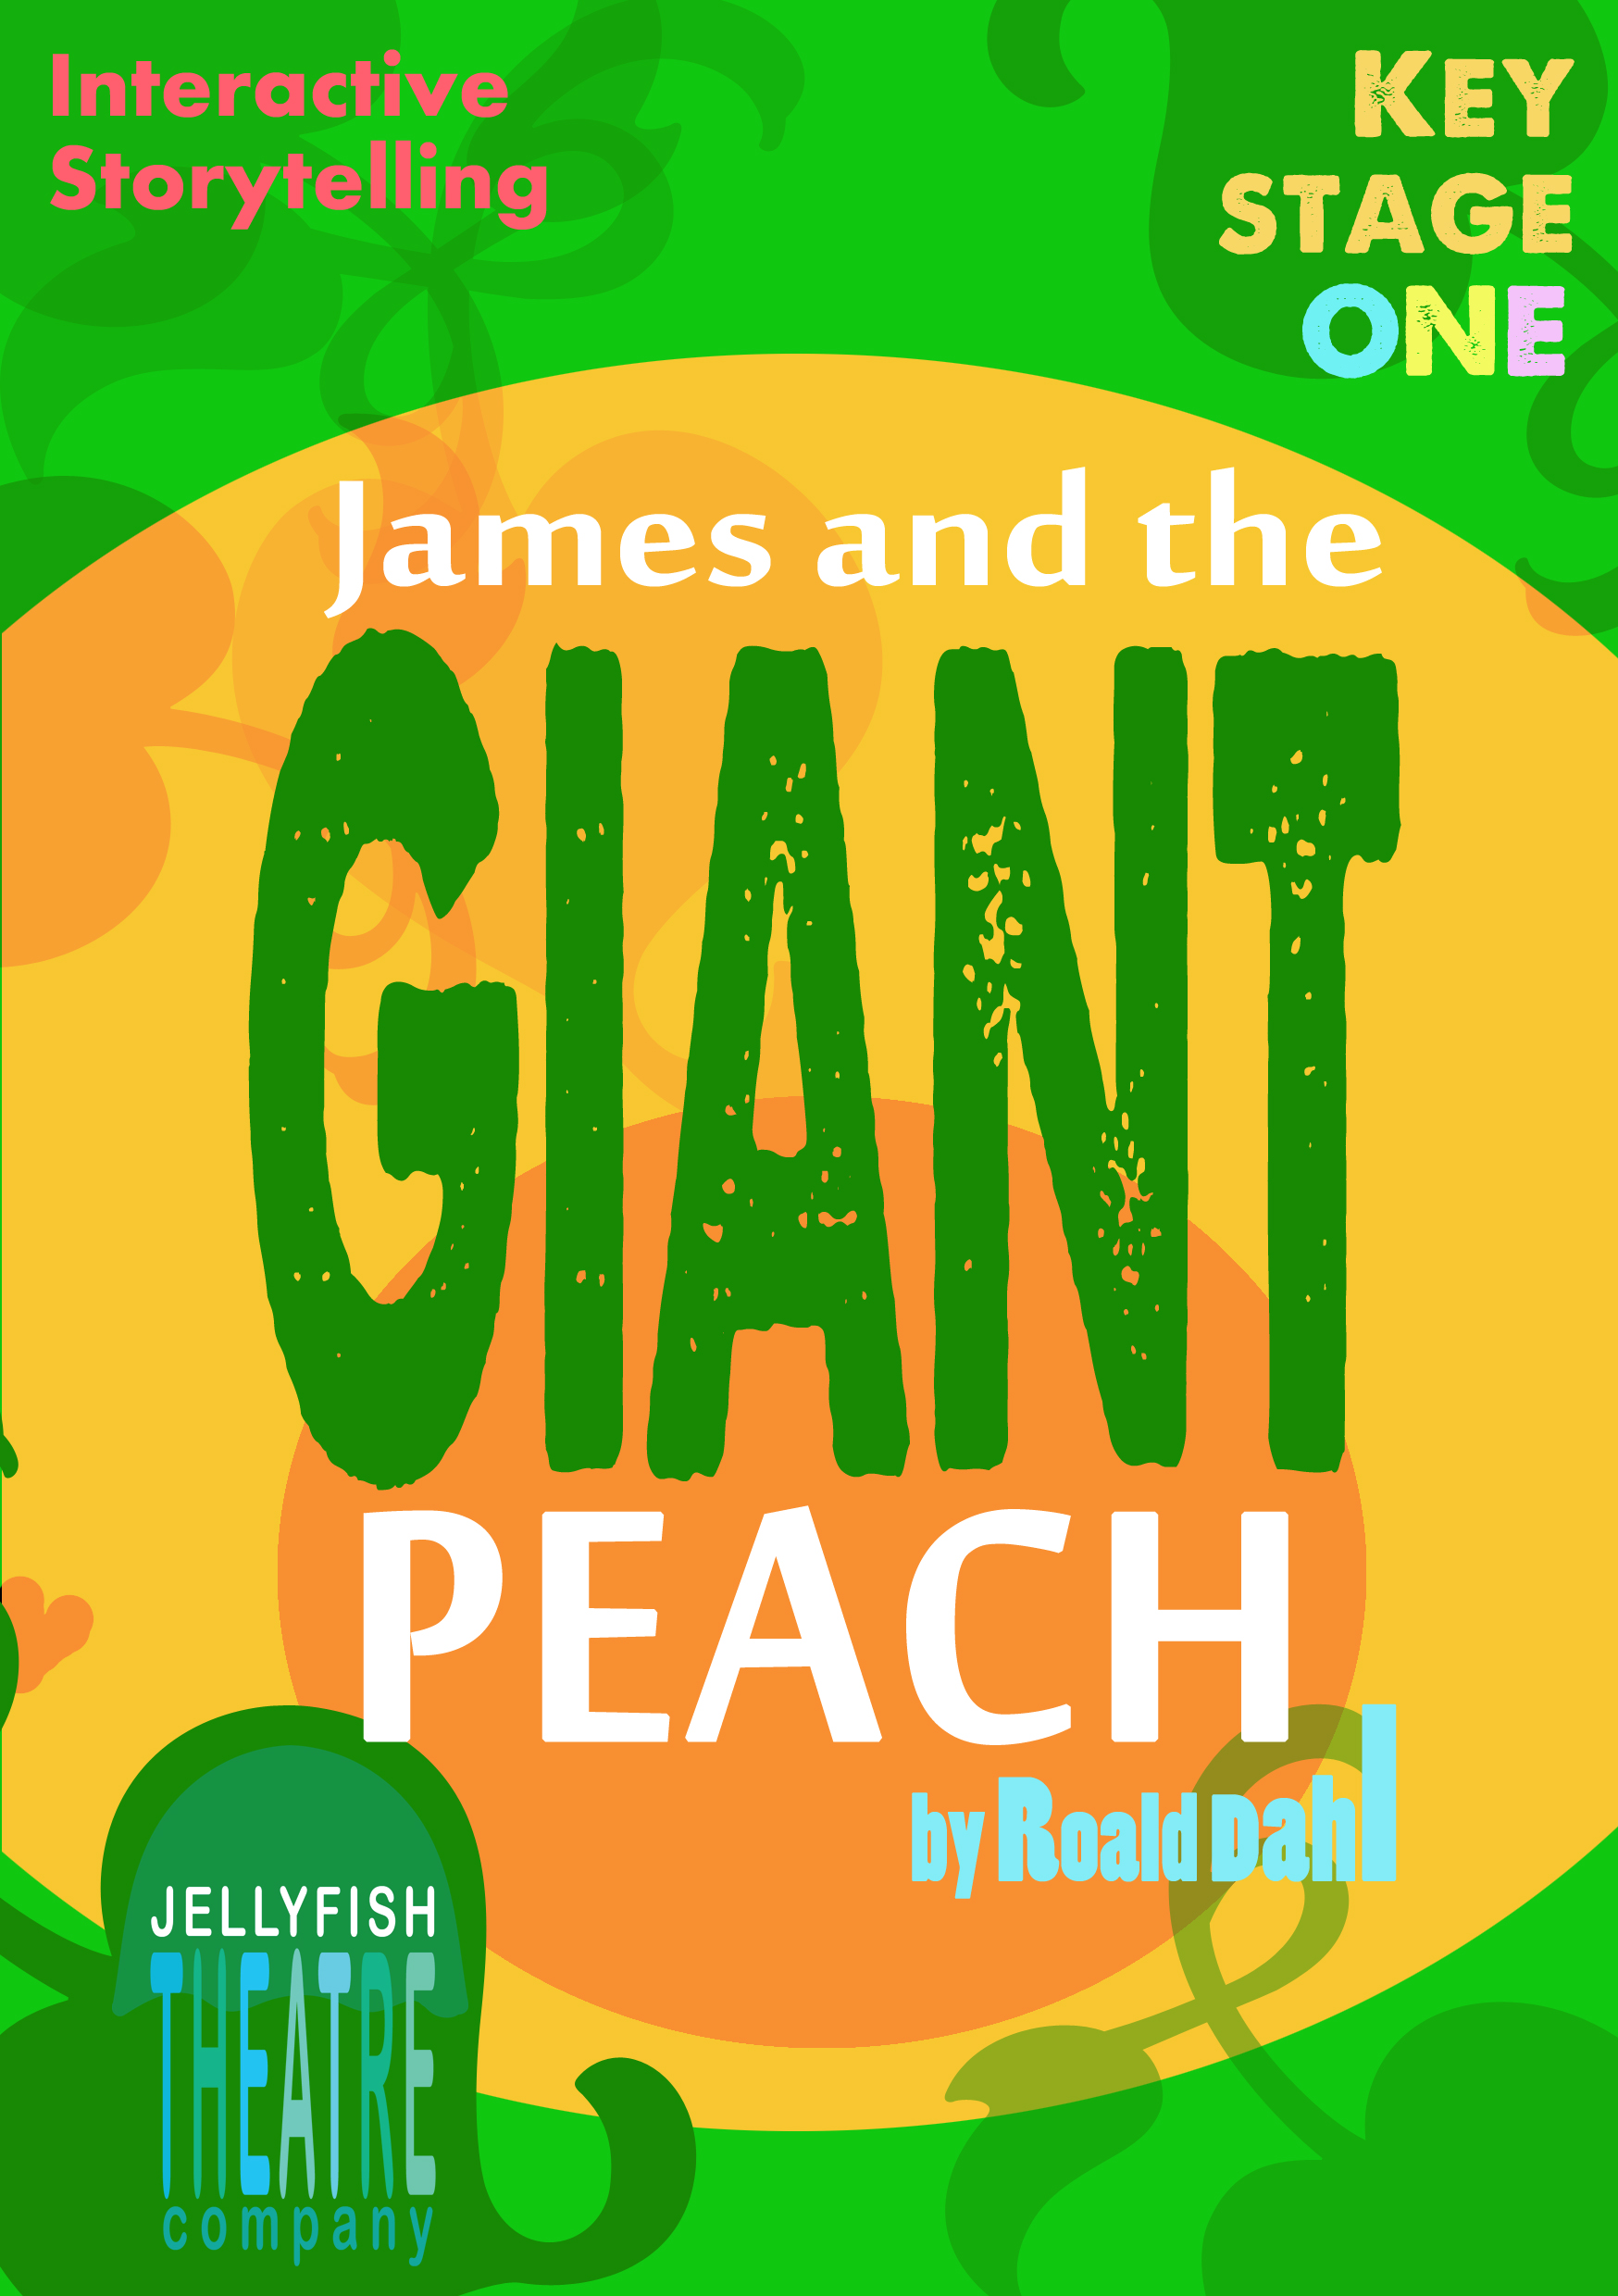 James and The Giant Peach leaflet for Jellyfish Theatre Company